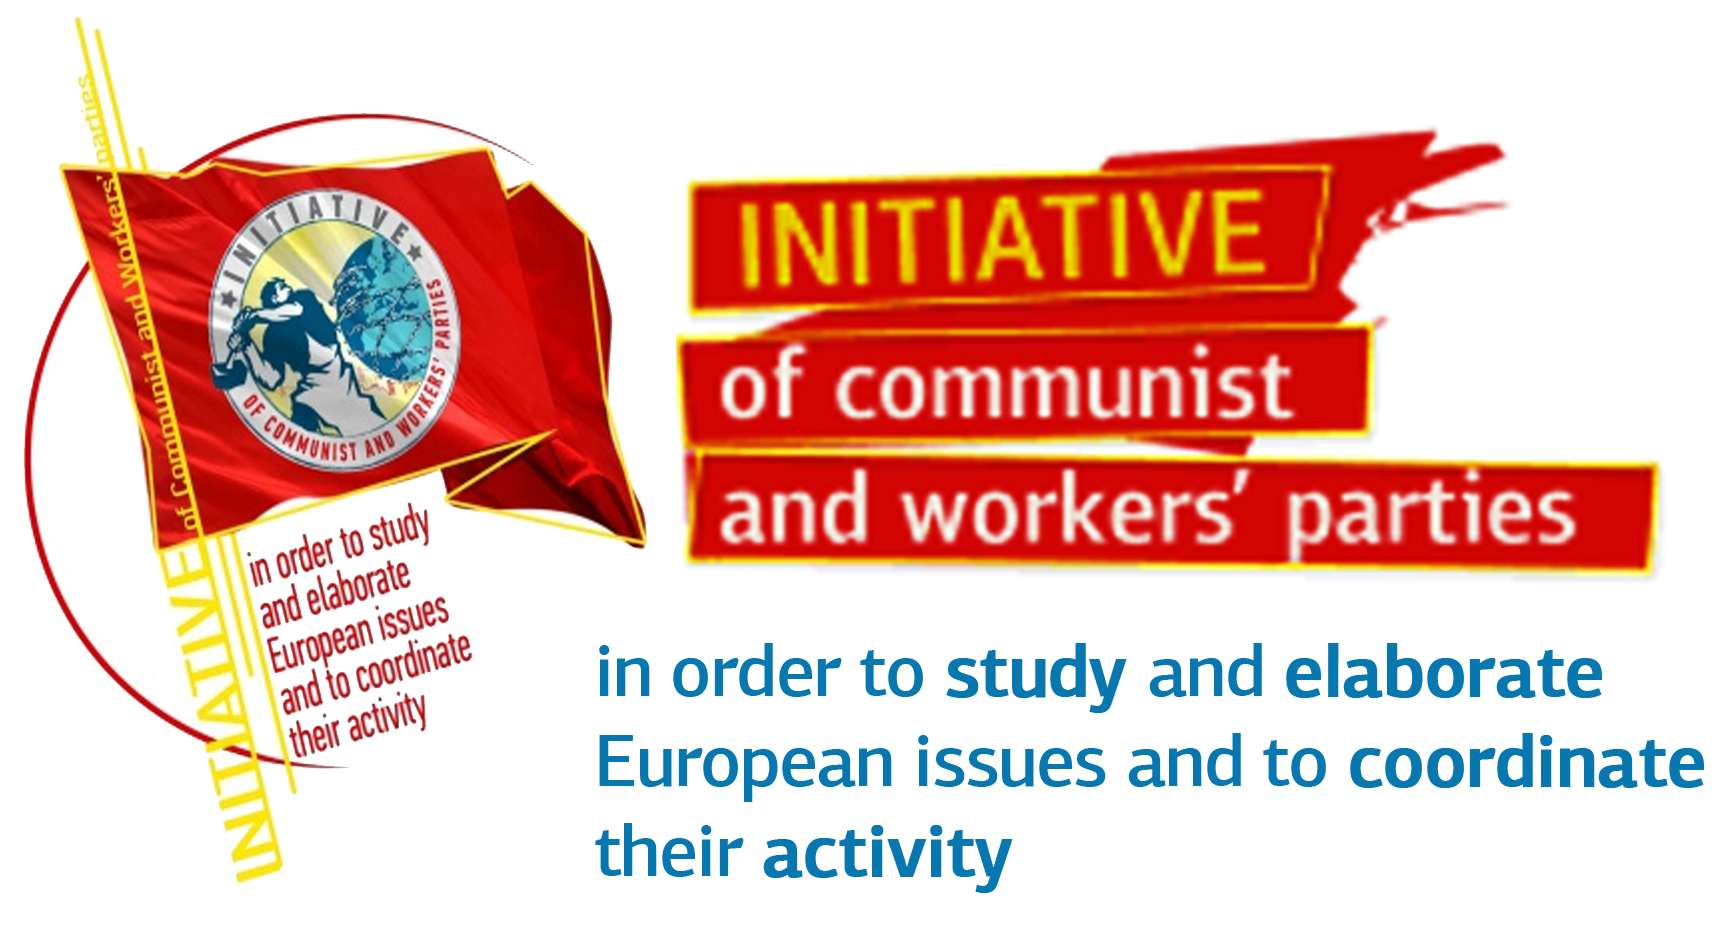 Communist Workers Parties to study and elaborate European issues to coordinate their activity